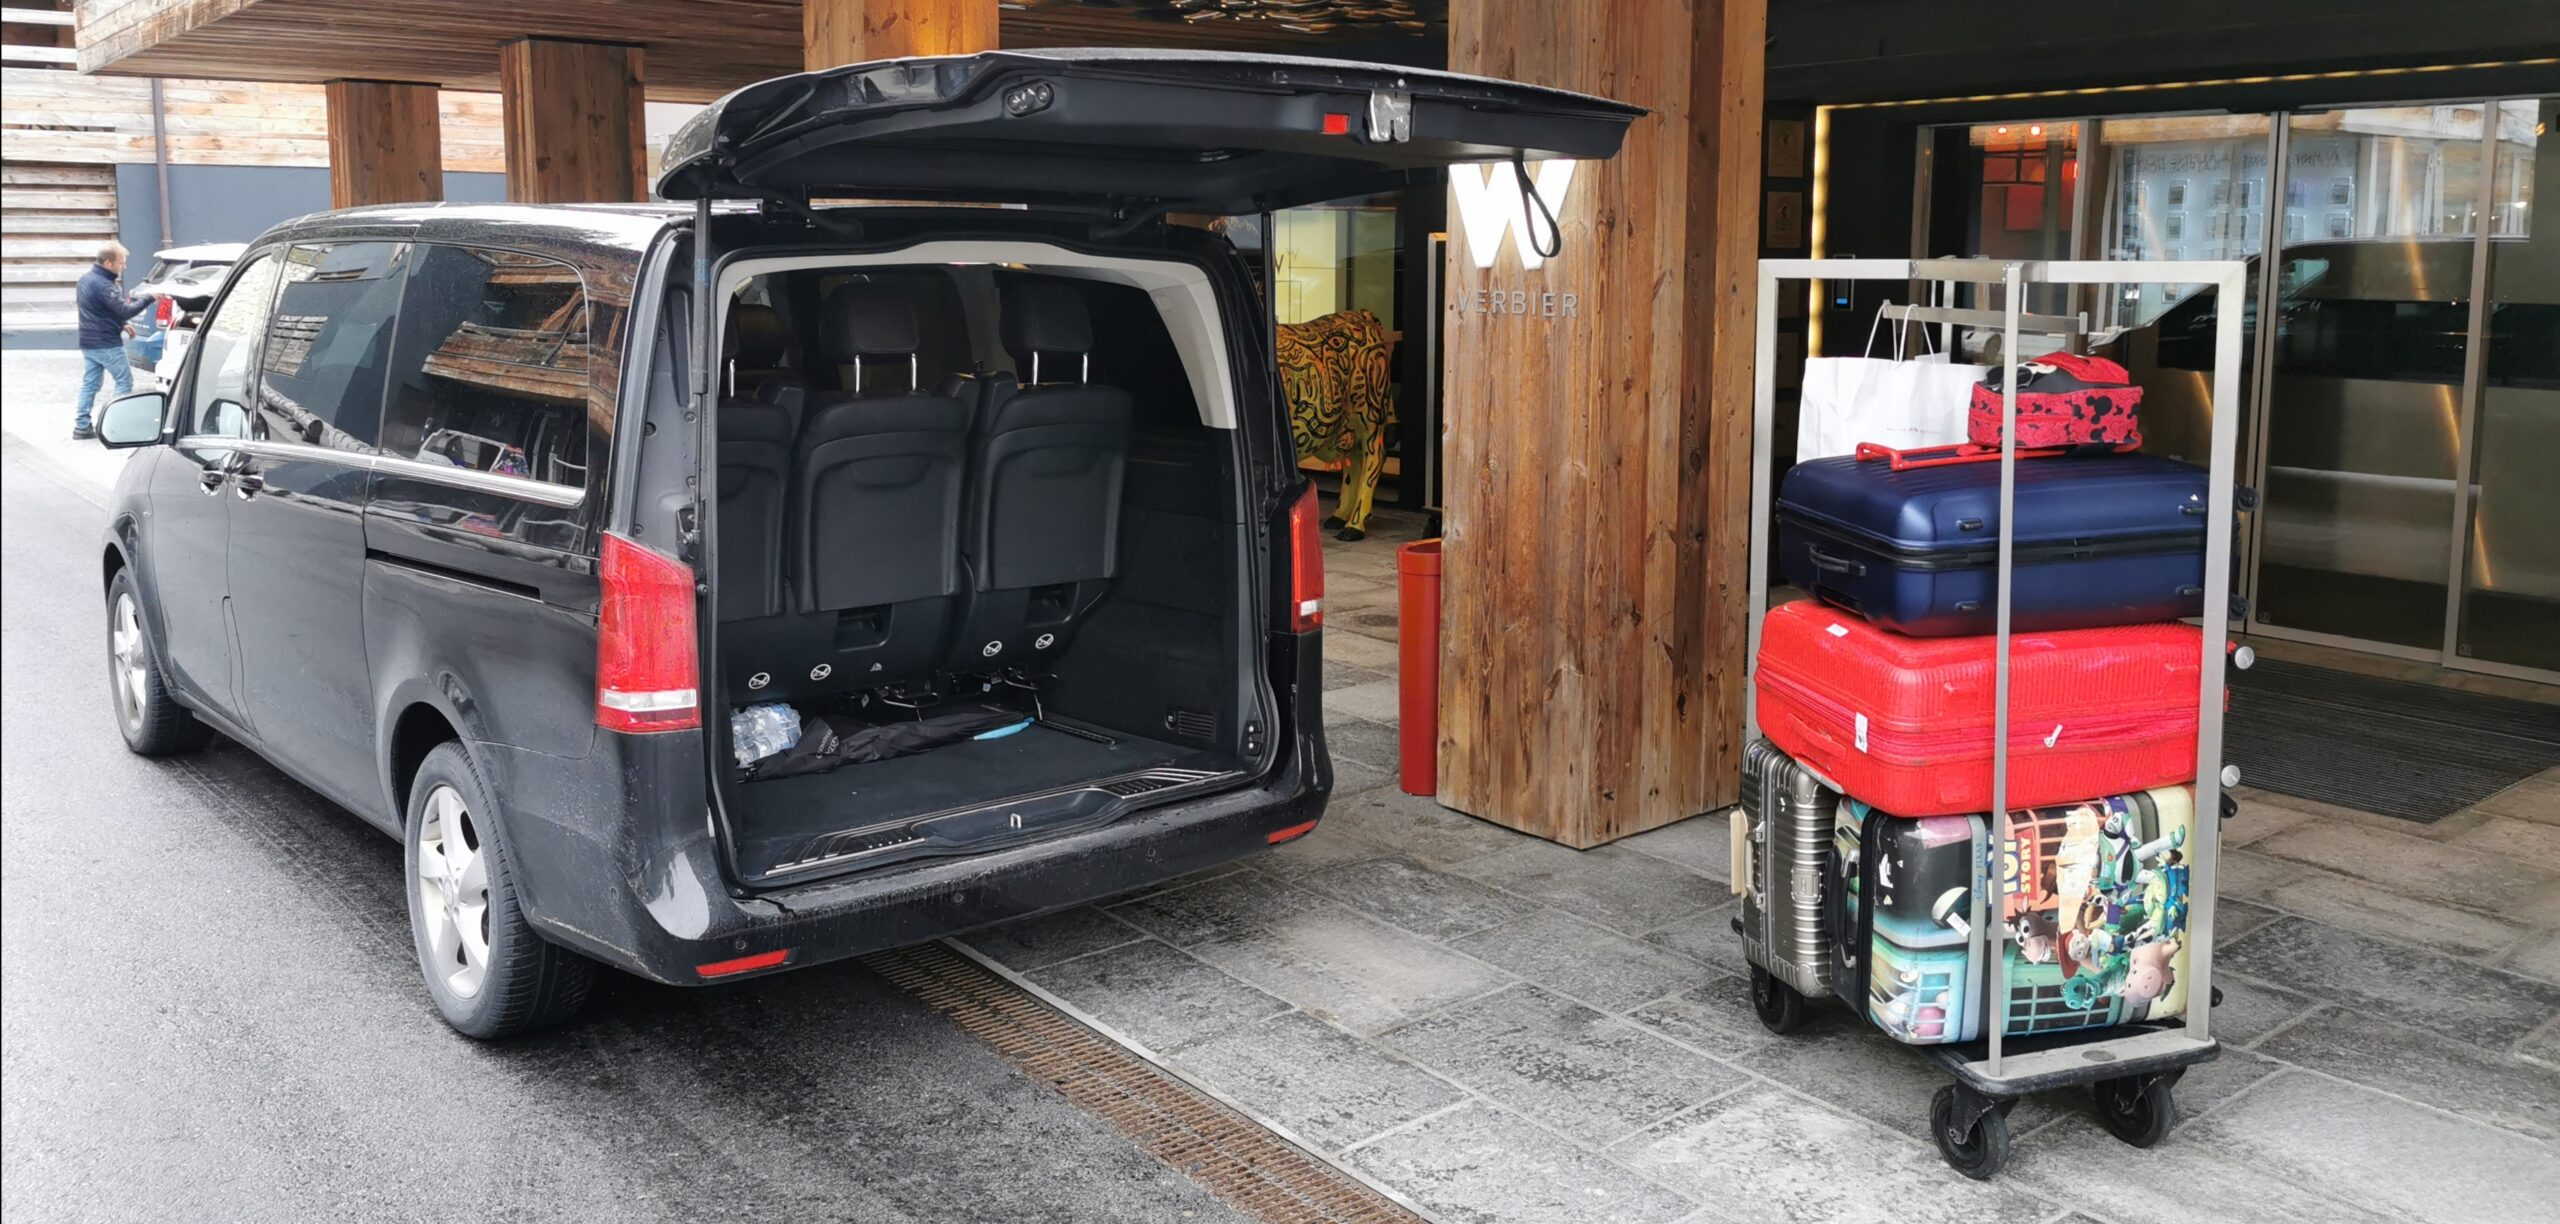 hire this roomy car for ski transfers from airports in switzerland to ski resorts